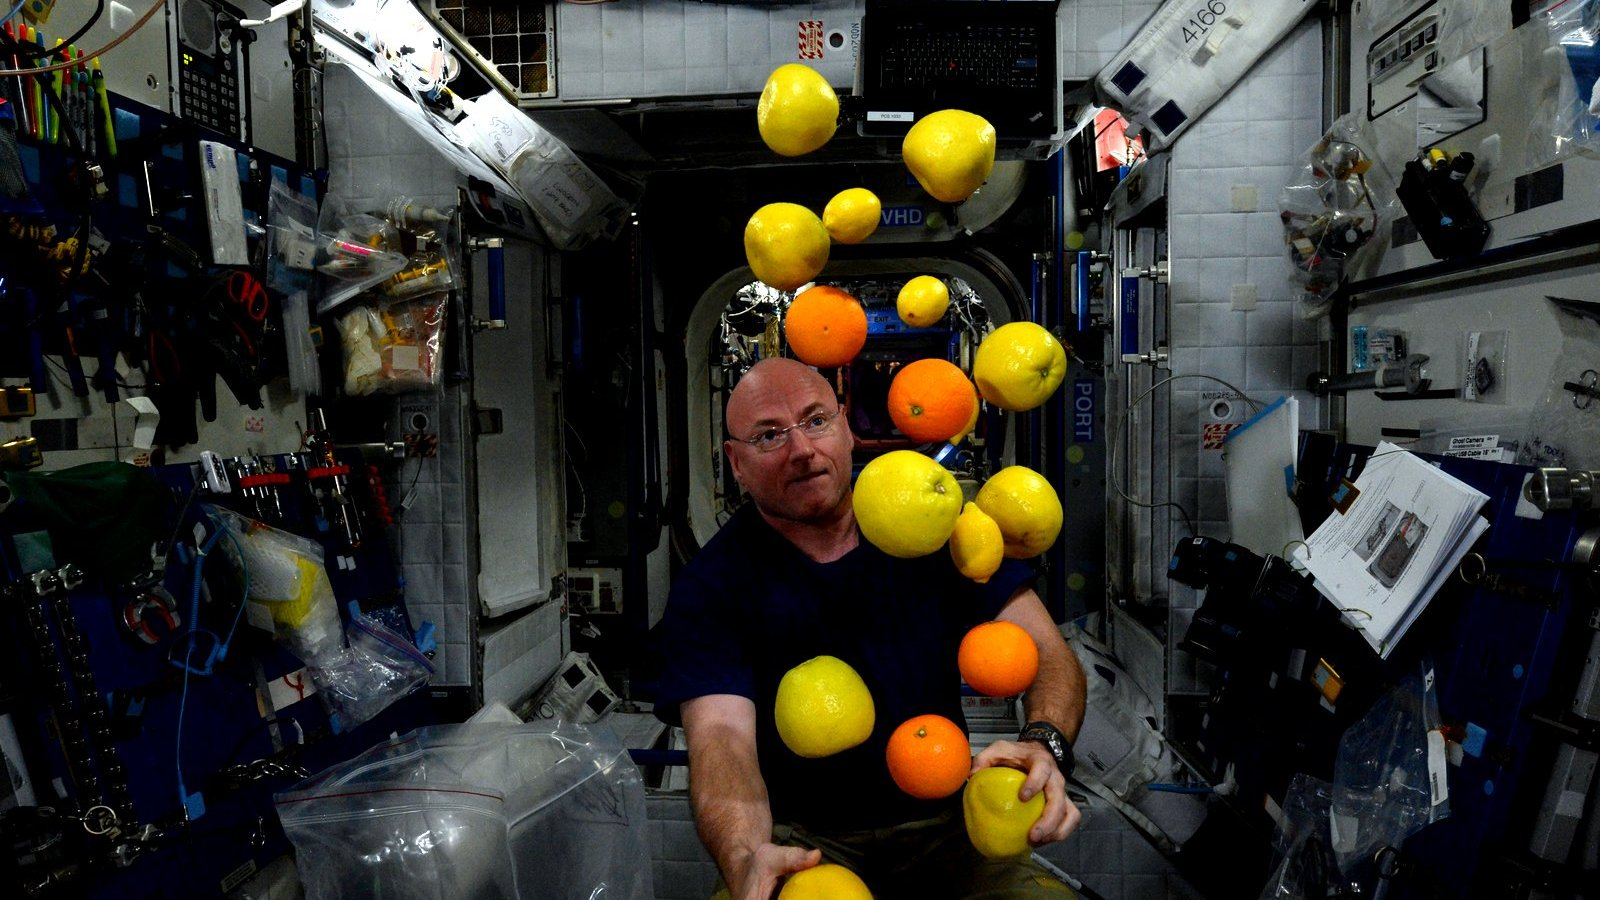 Food Inspiration in space